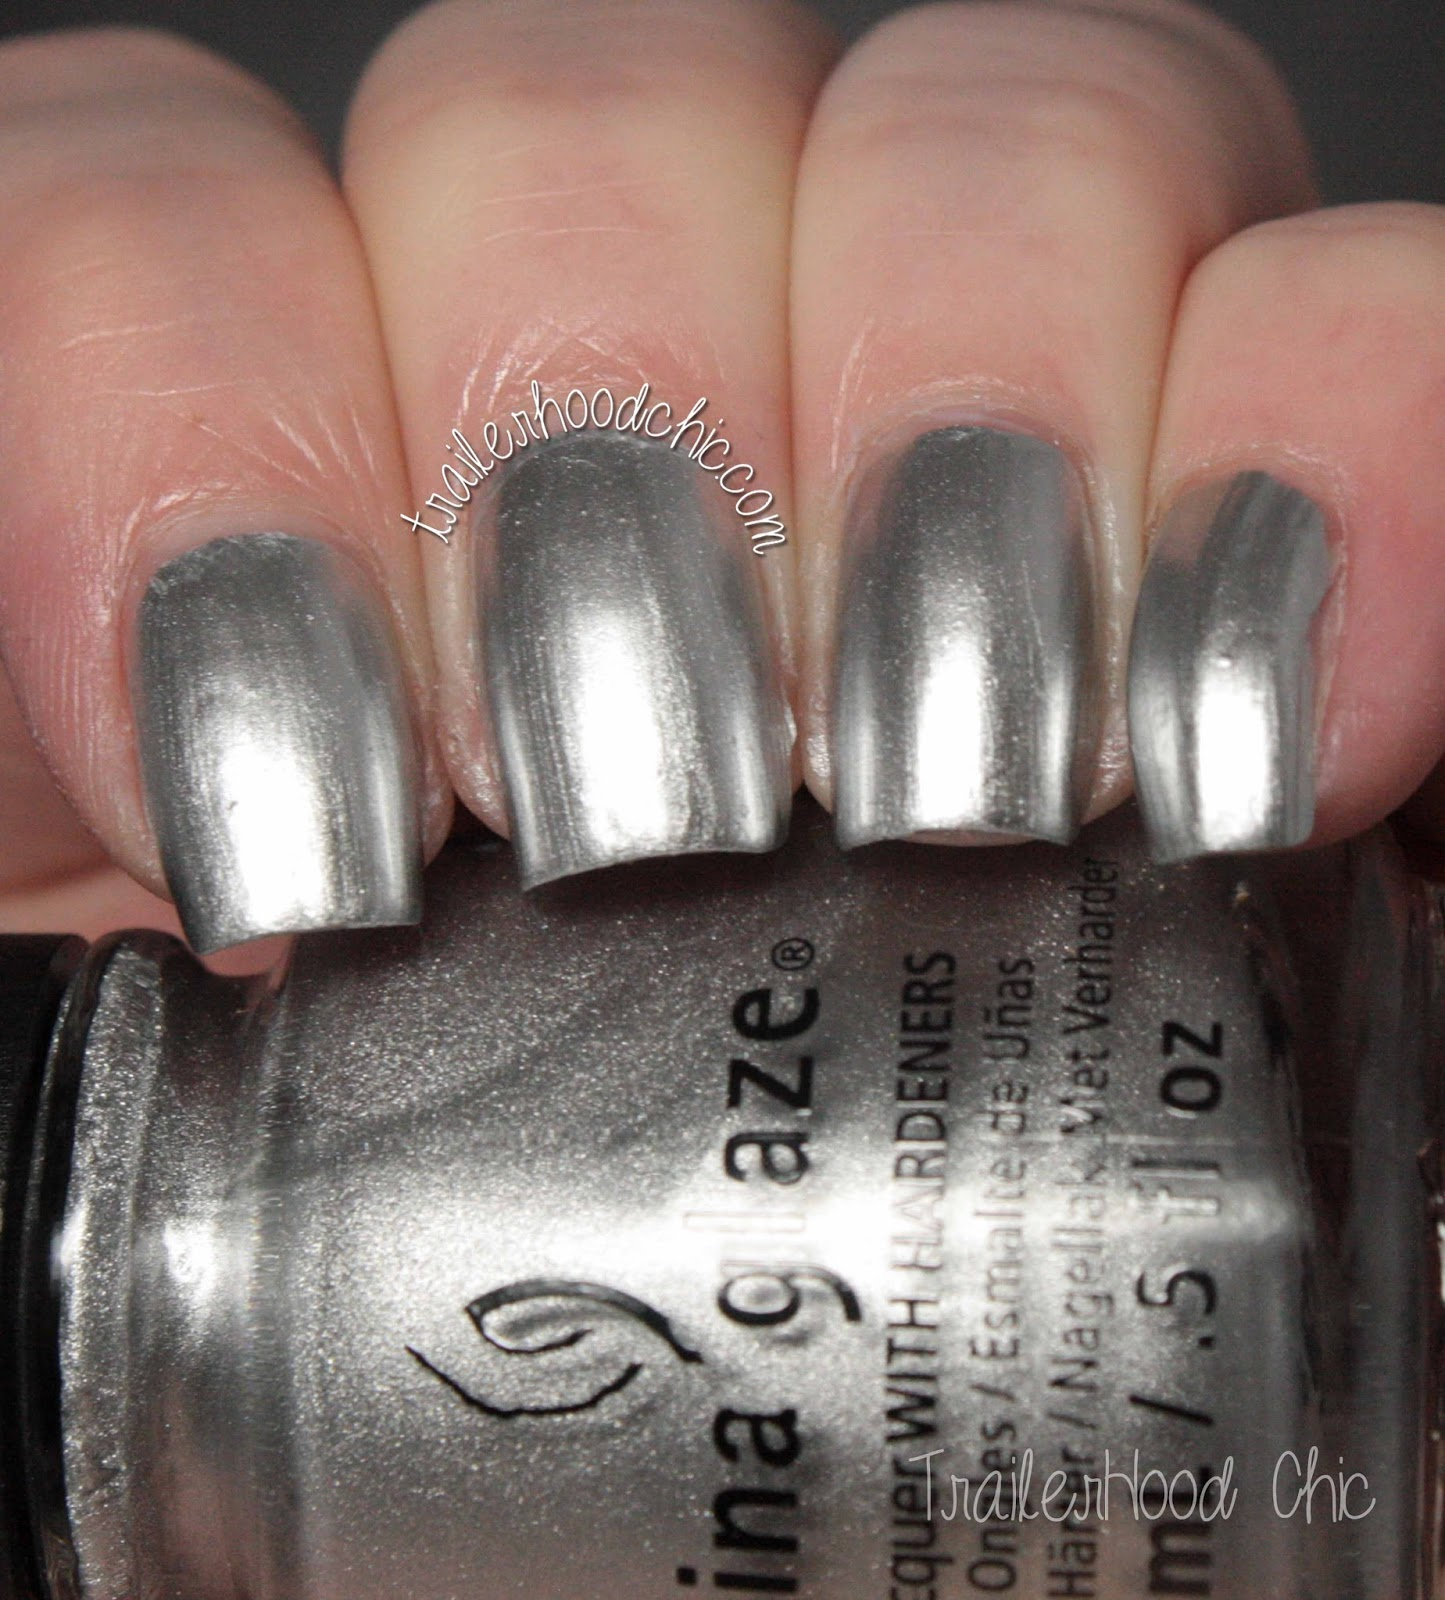 china glaze twinkle swatches i'd melt for you